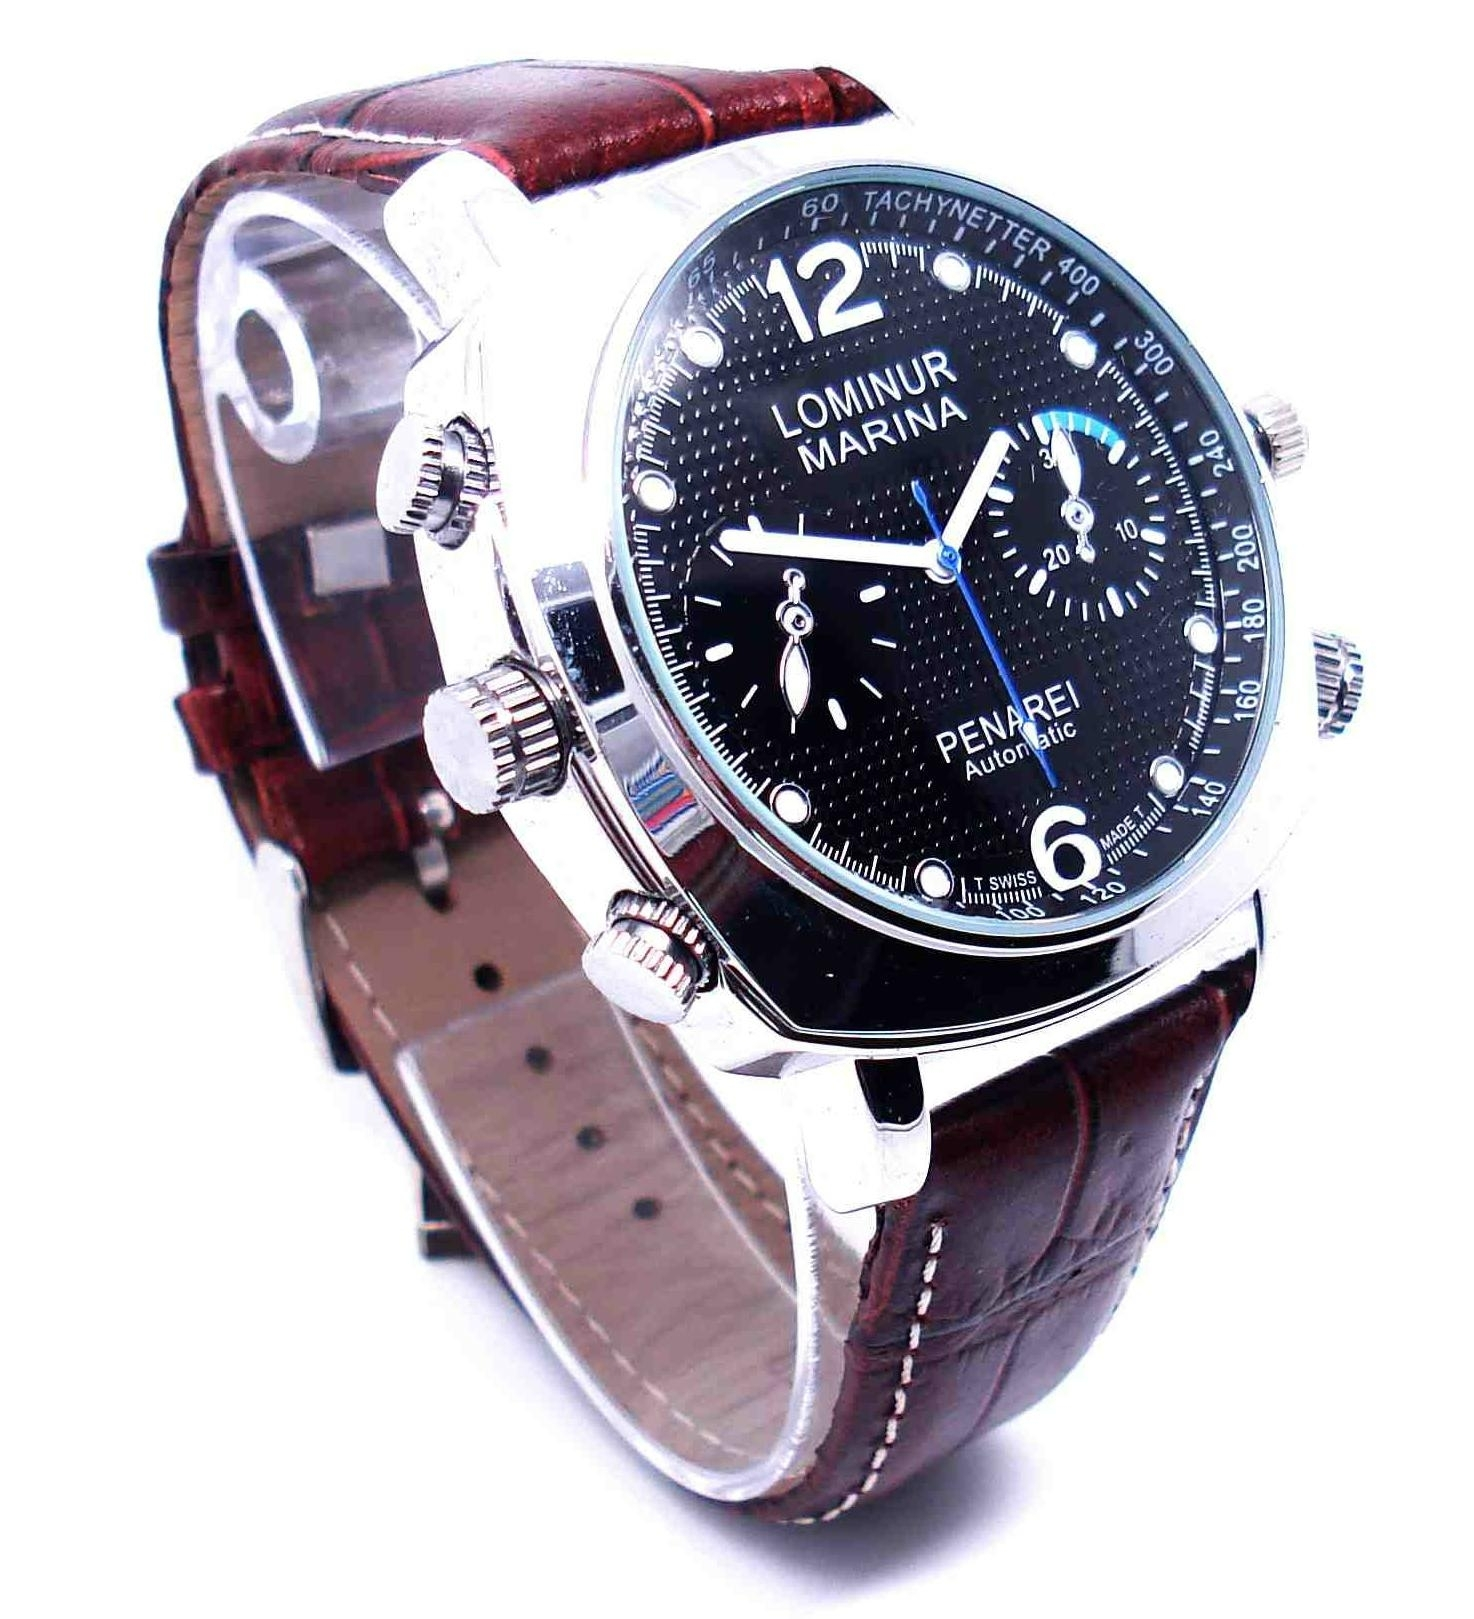 hd1080p spy watch camera